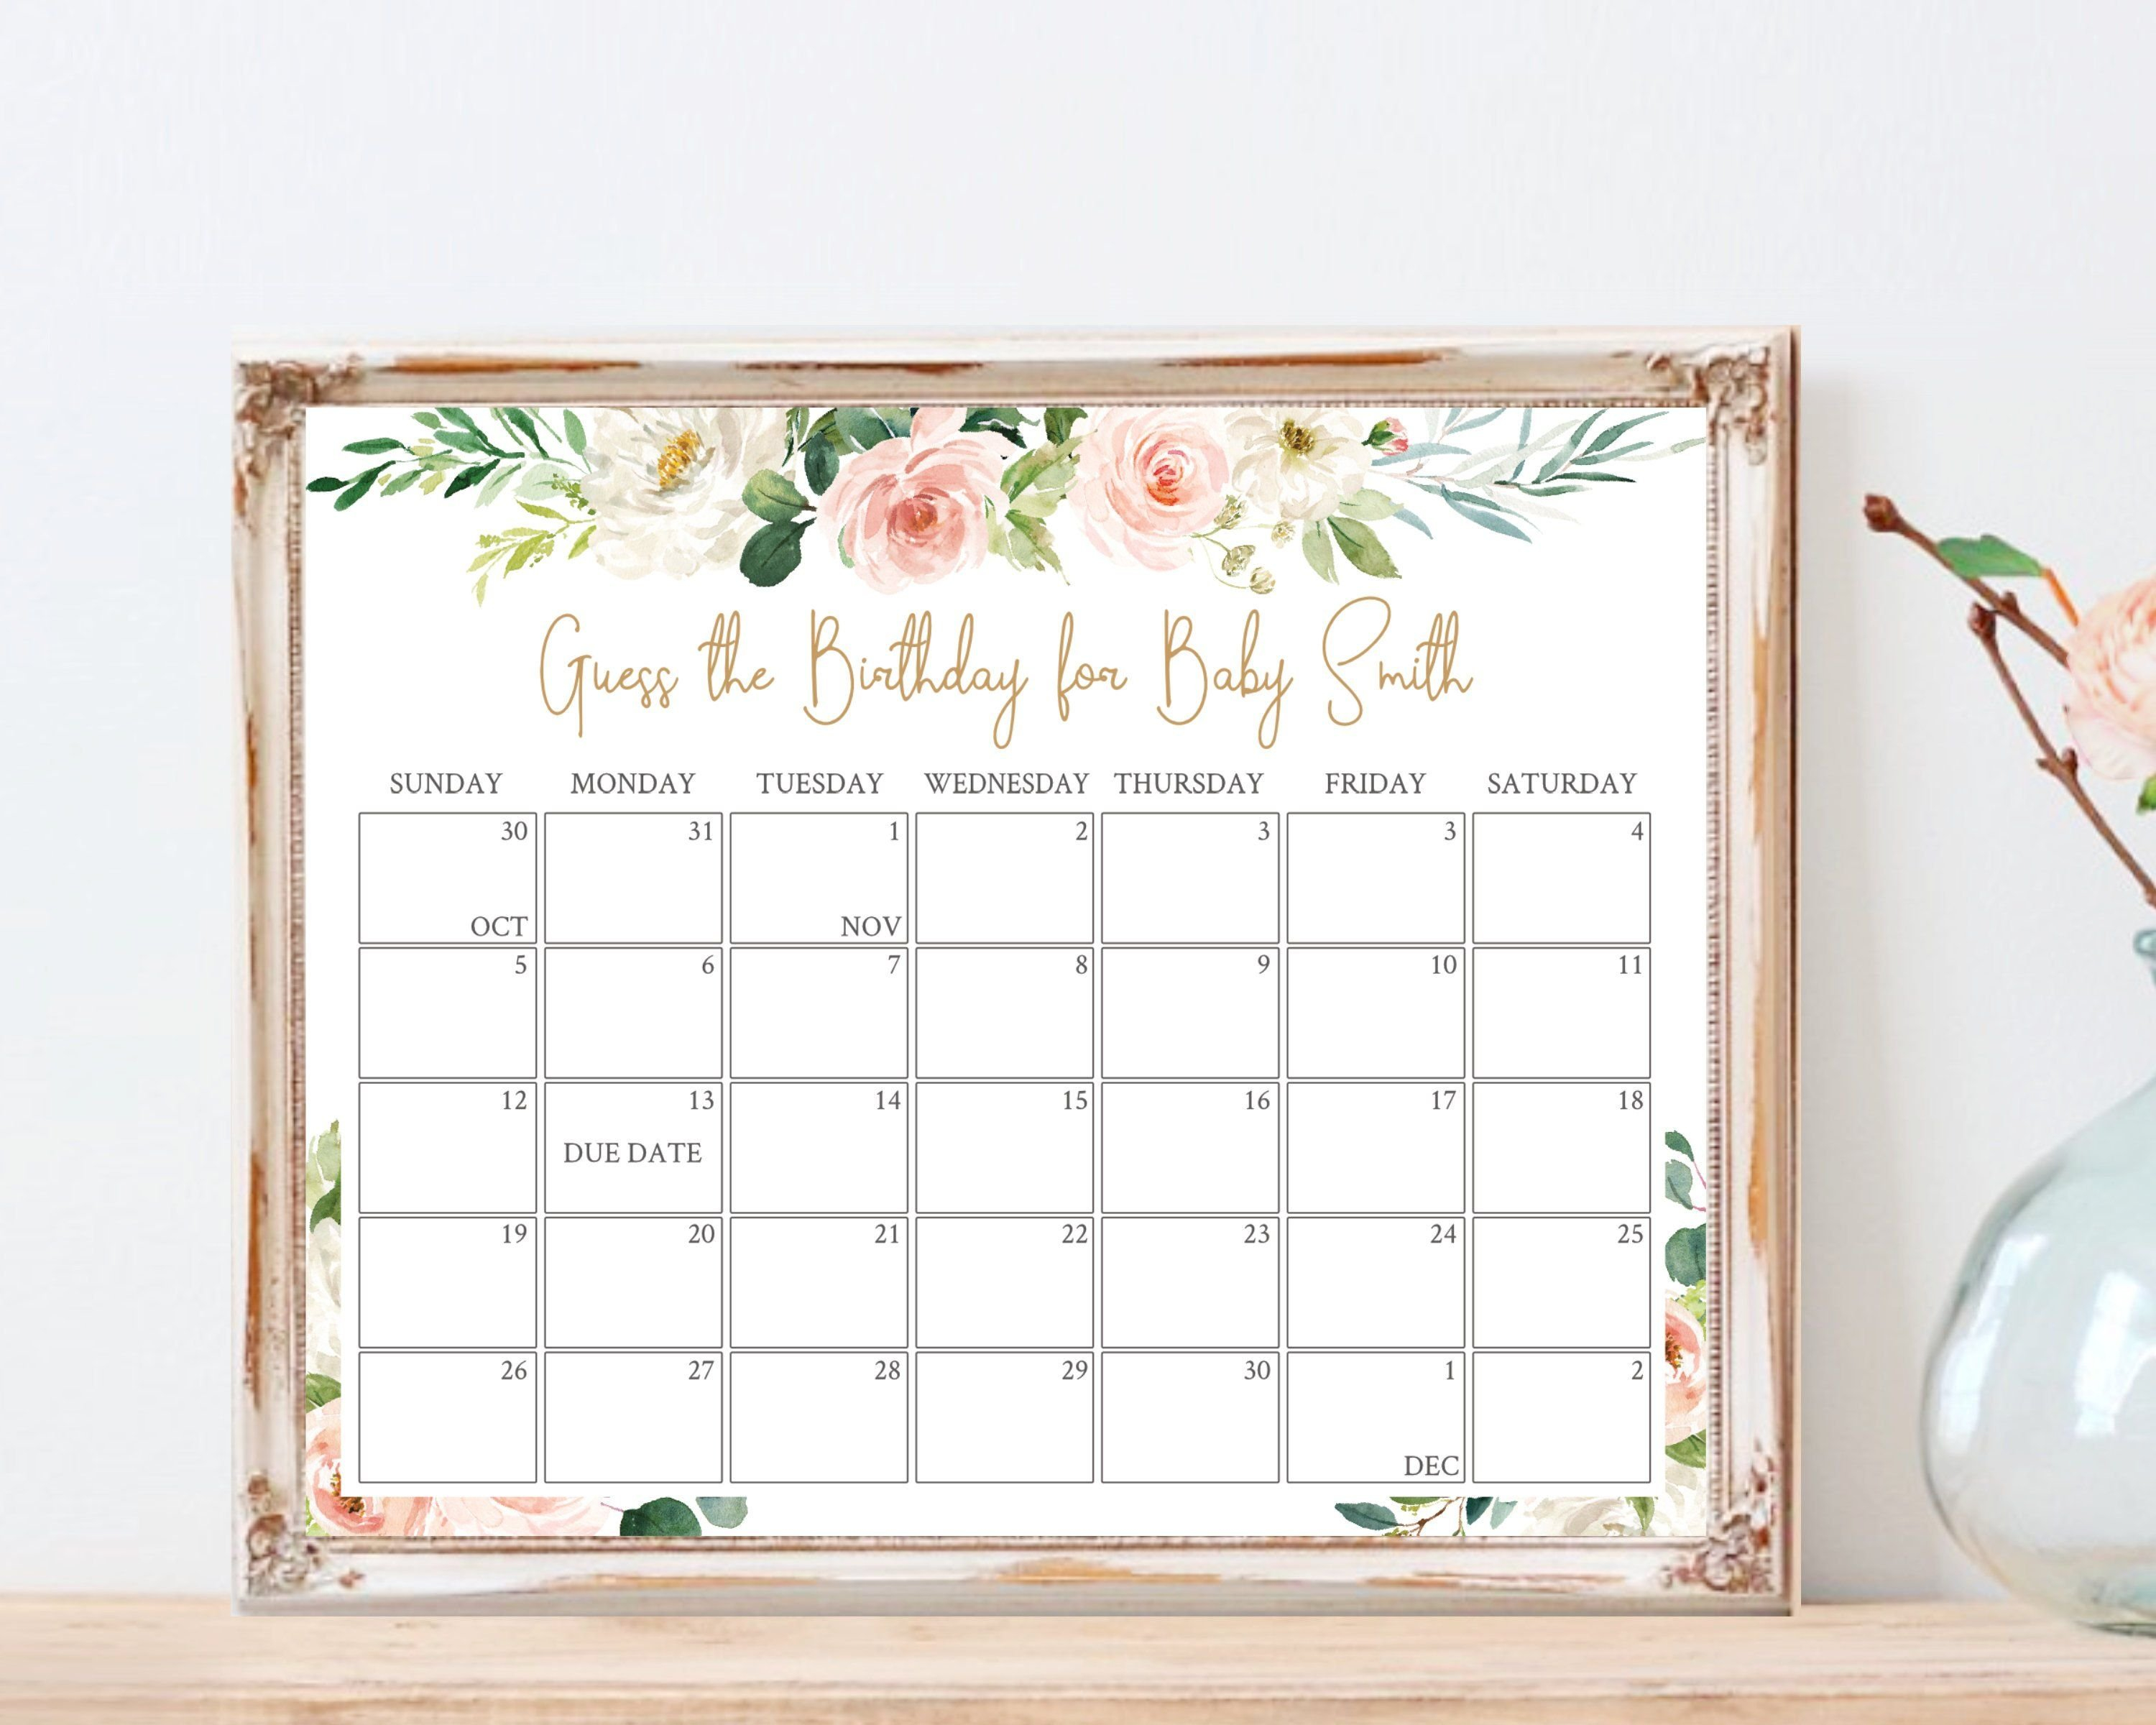 Baby Due Date Calendar, Printable Game, Guess Baby Birthday Guess The Due Date Printable Calendar